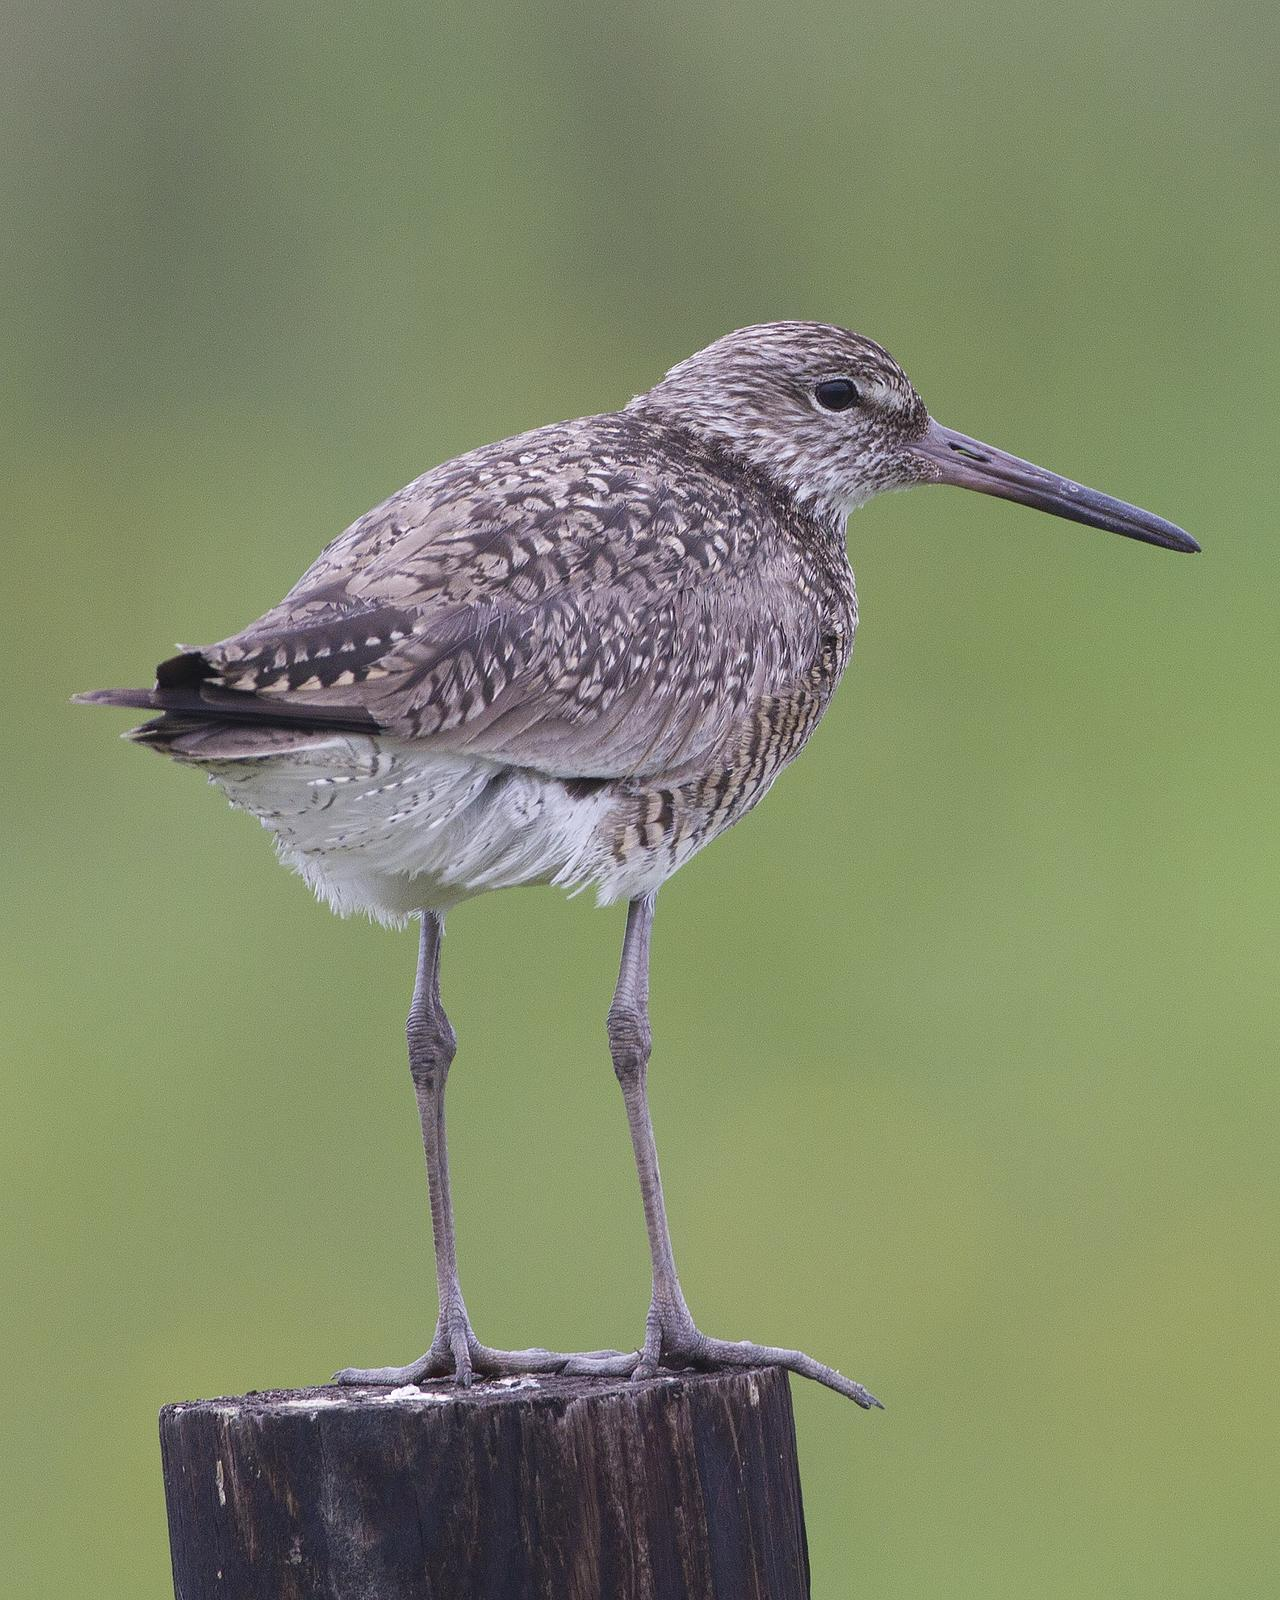 Willet Photo by Bill Adams